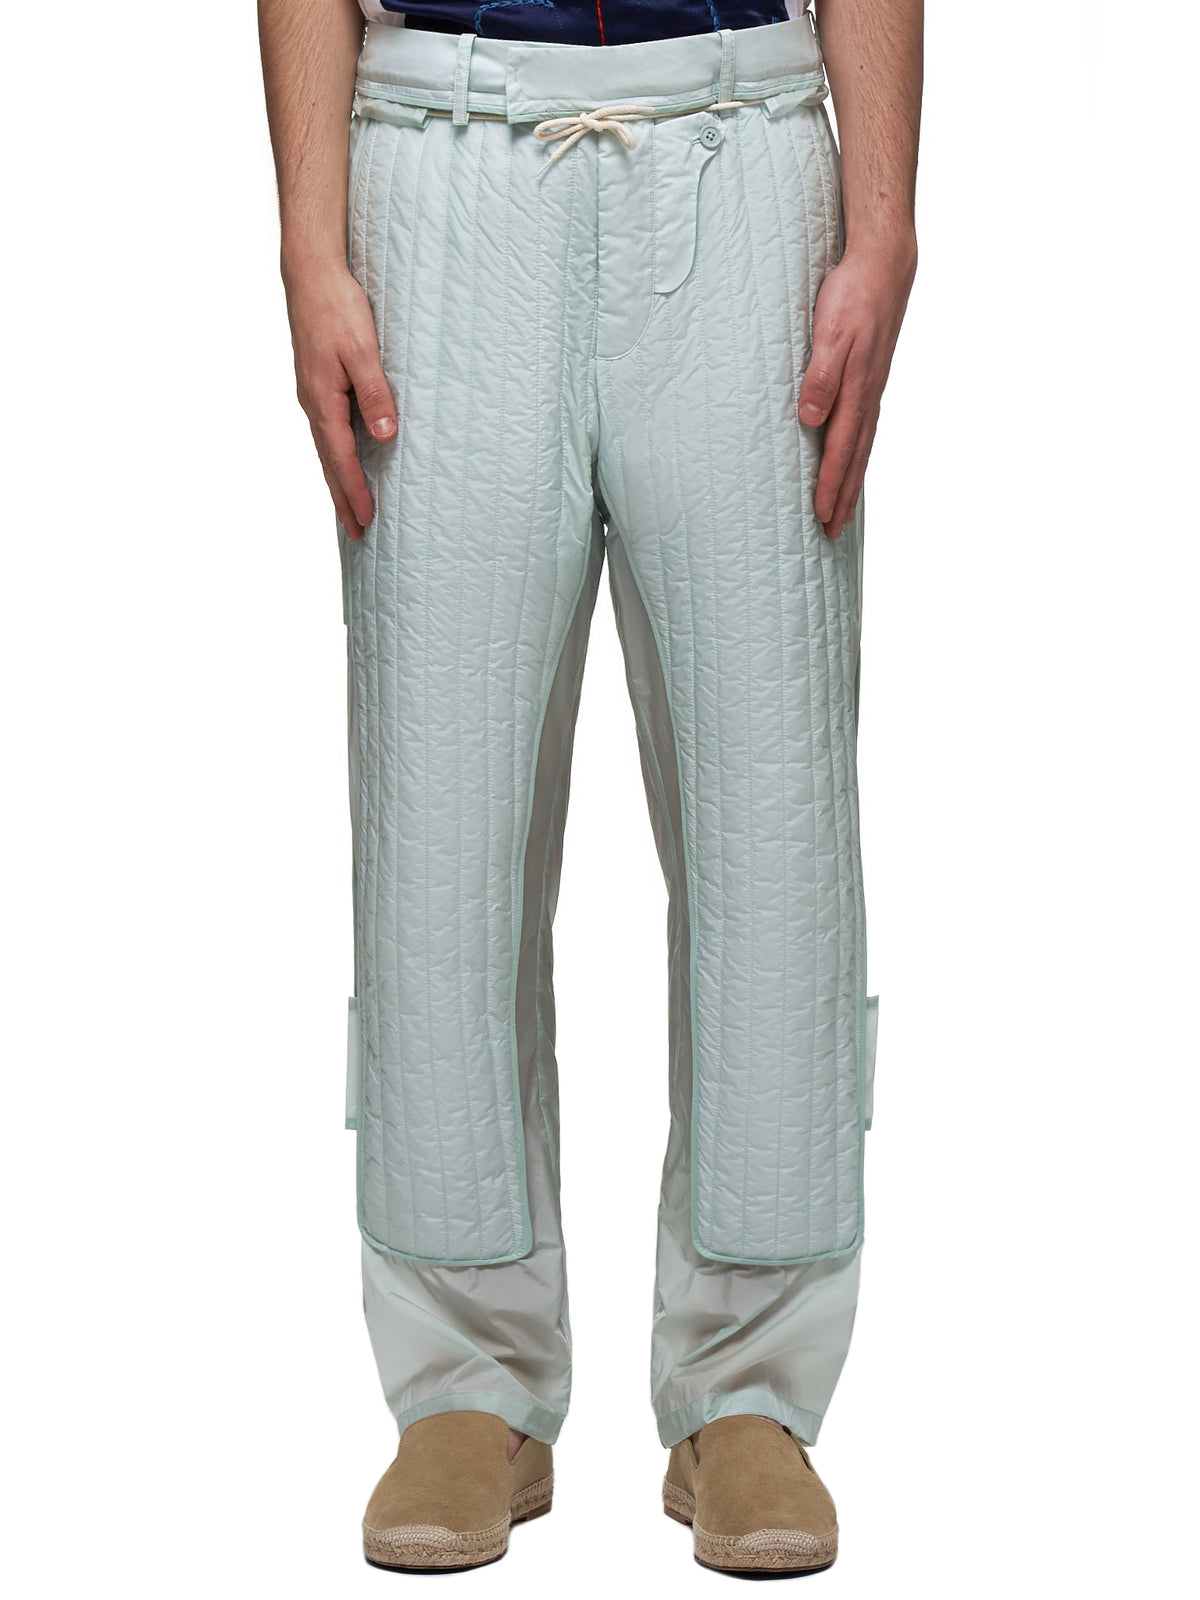 Craig Green Quilted Pants - Hlorenzo Front